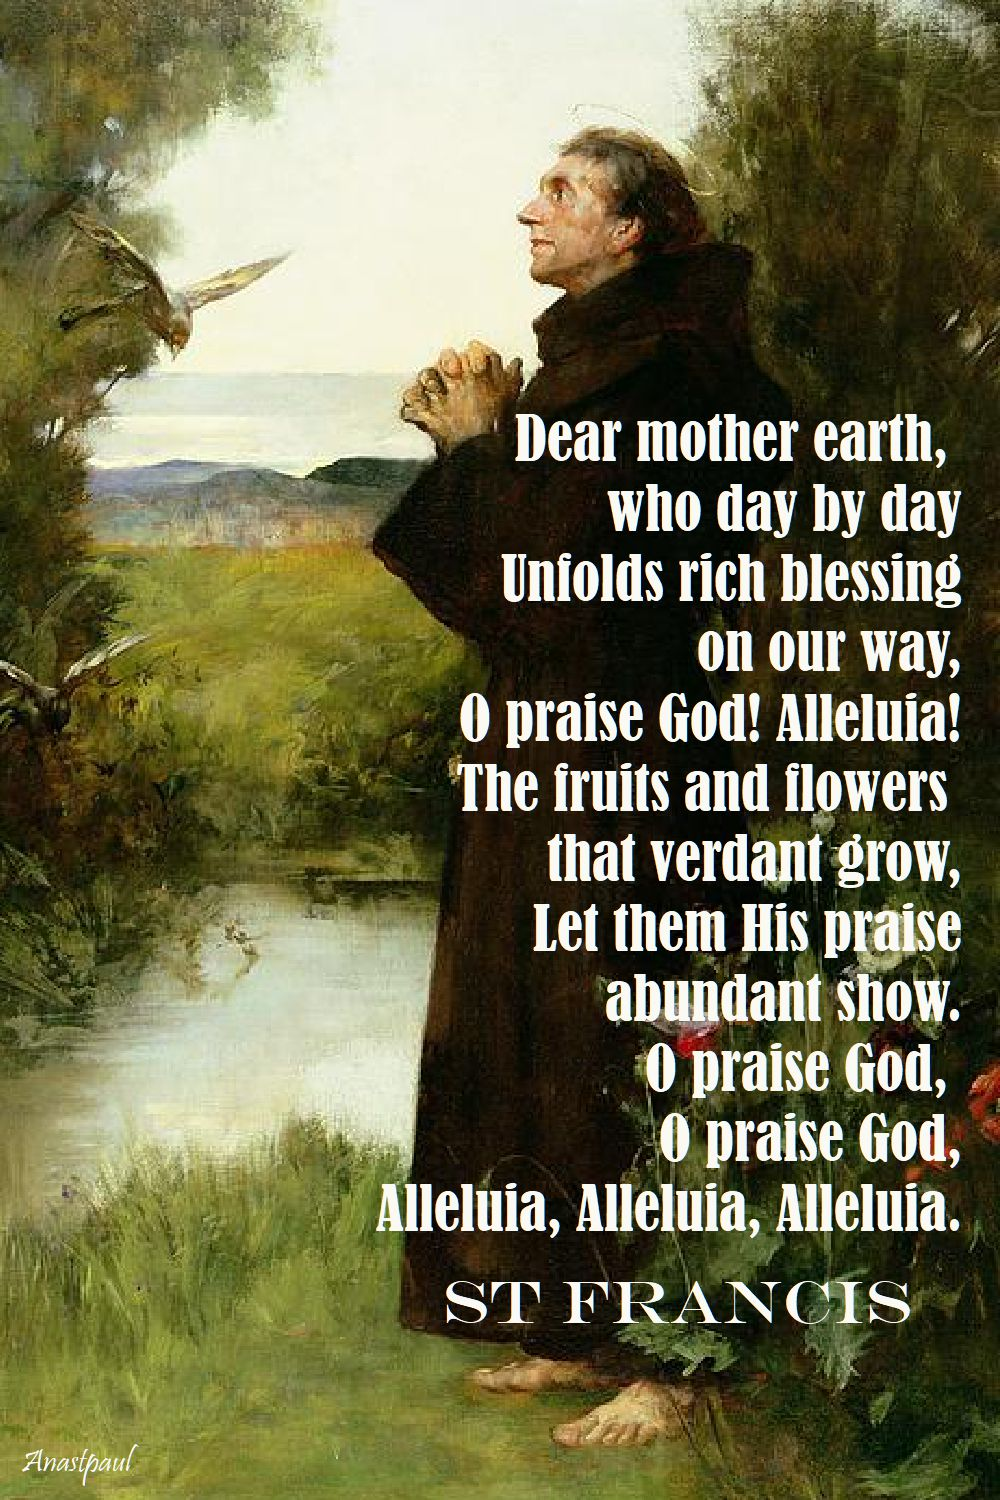 dear mother earth - st francis prayer